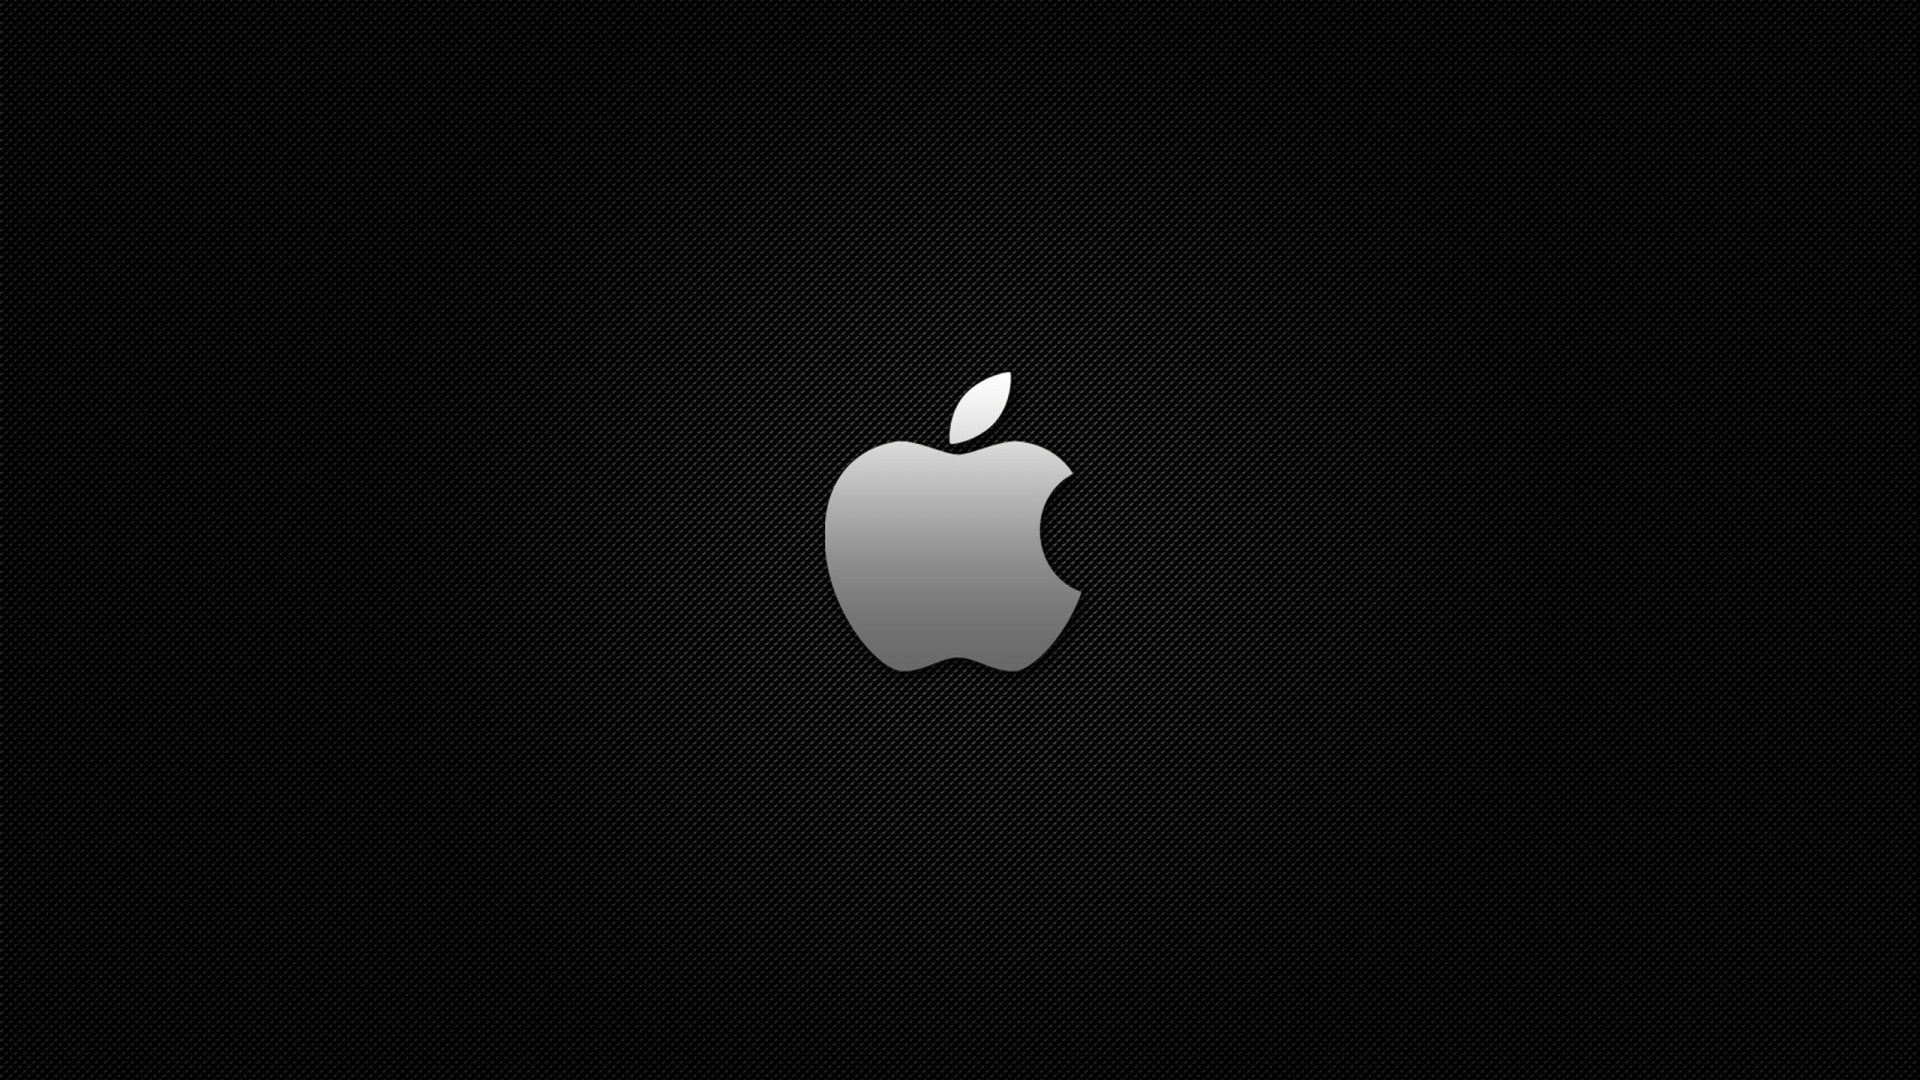 Black Apple Logo Wallpapers Hd Wallpaper Apple Logo Wallpaper Apple Logo Wallpaper Iphone Apple Logo